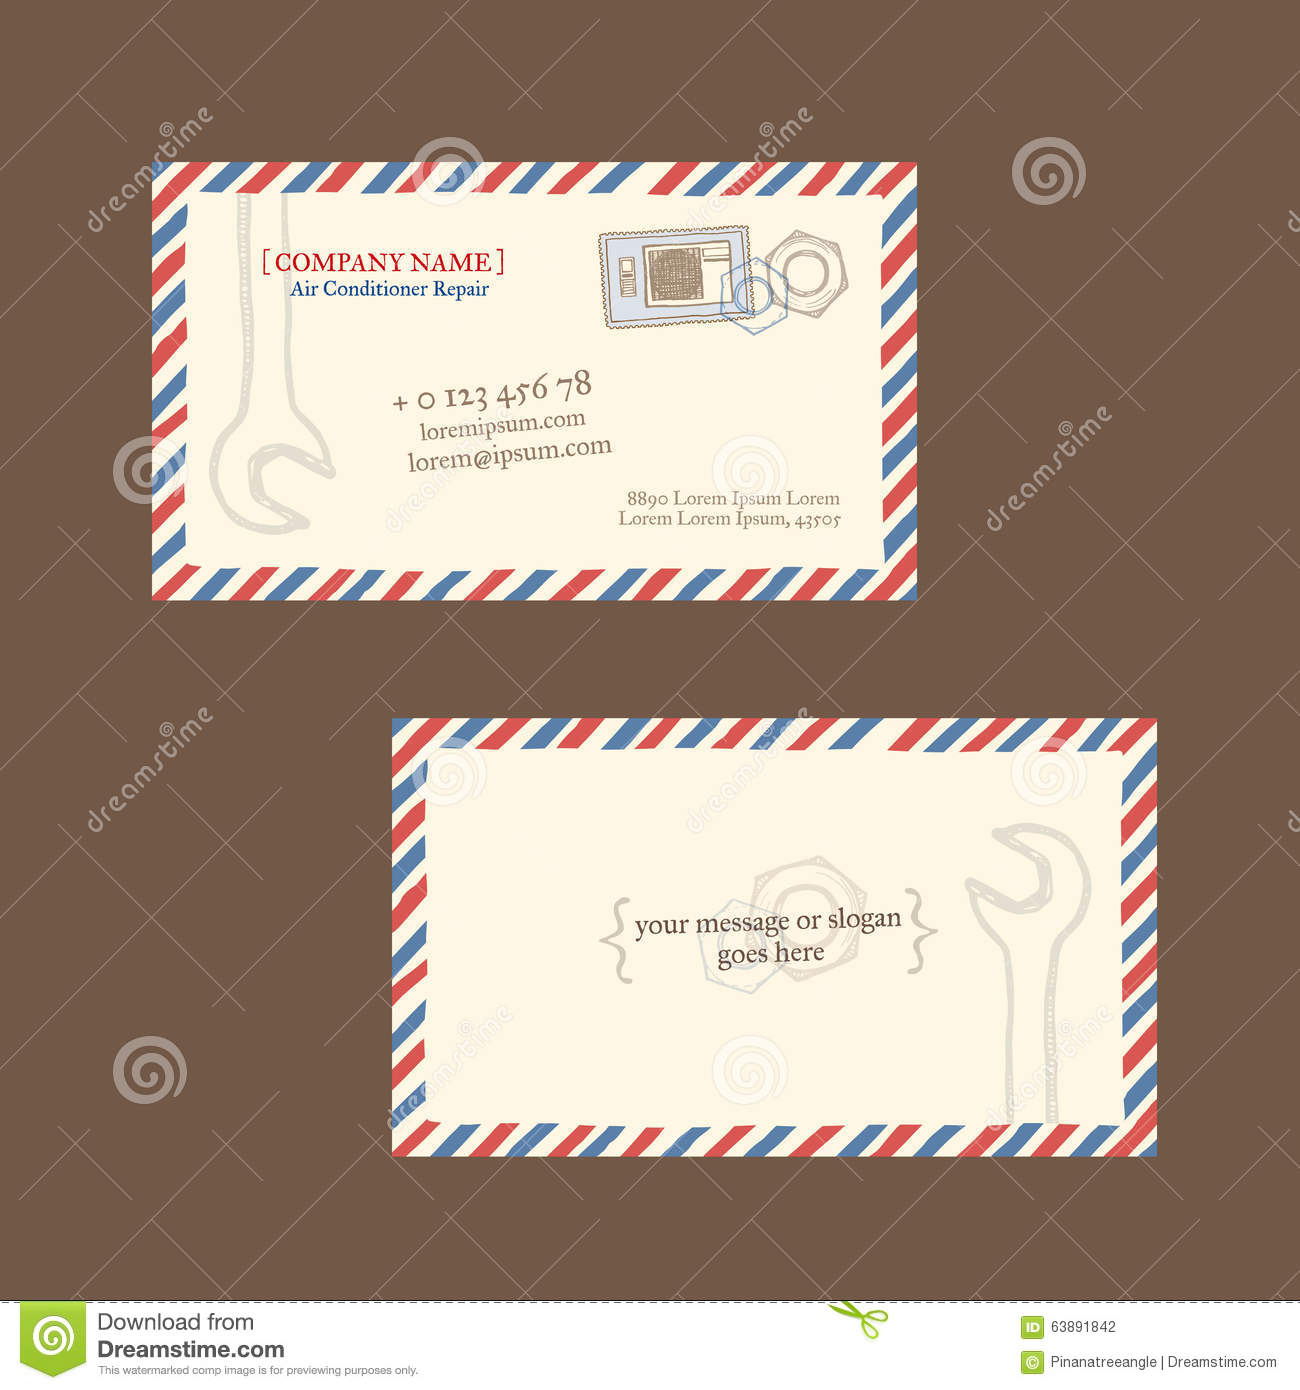 Repair Business Card Vector Template Stock Vector - Illustration of ...